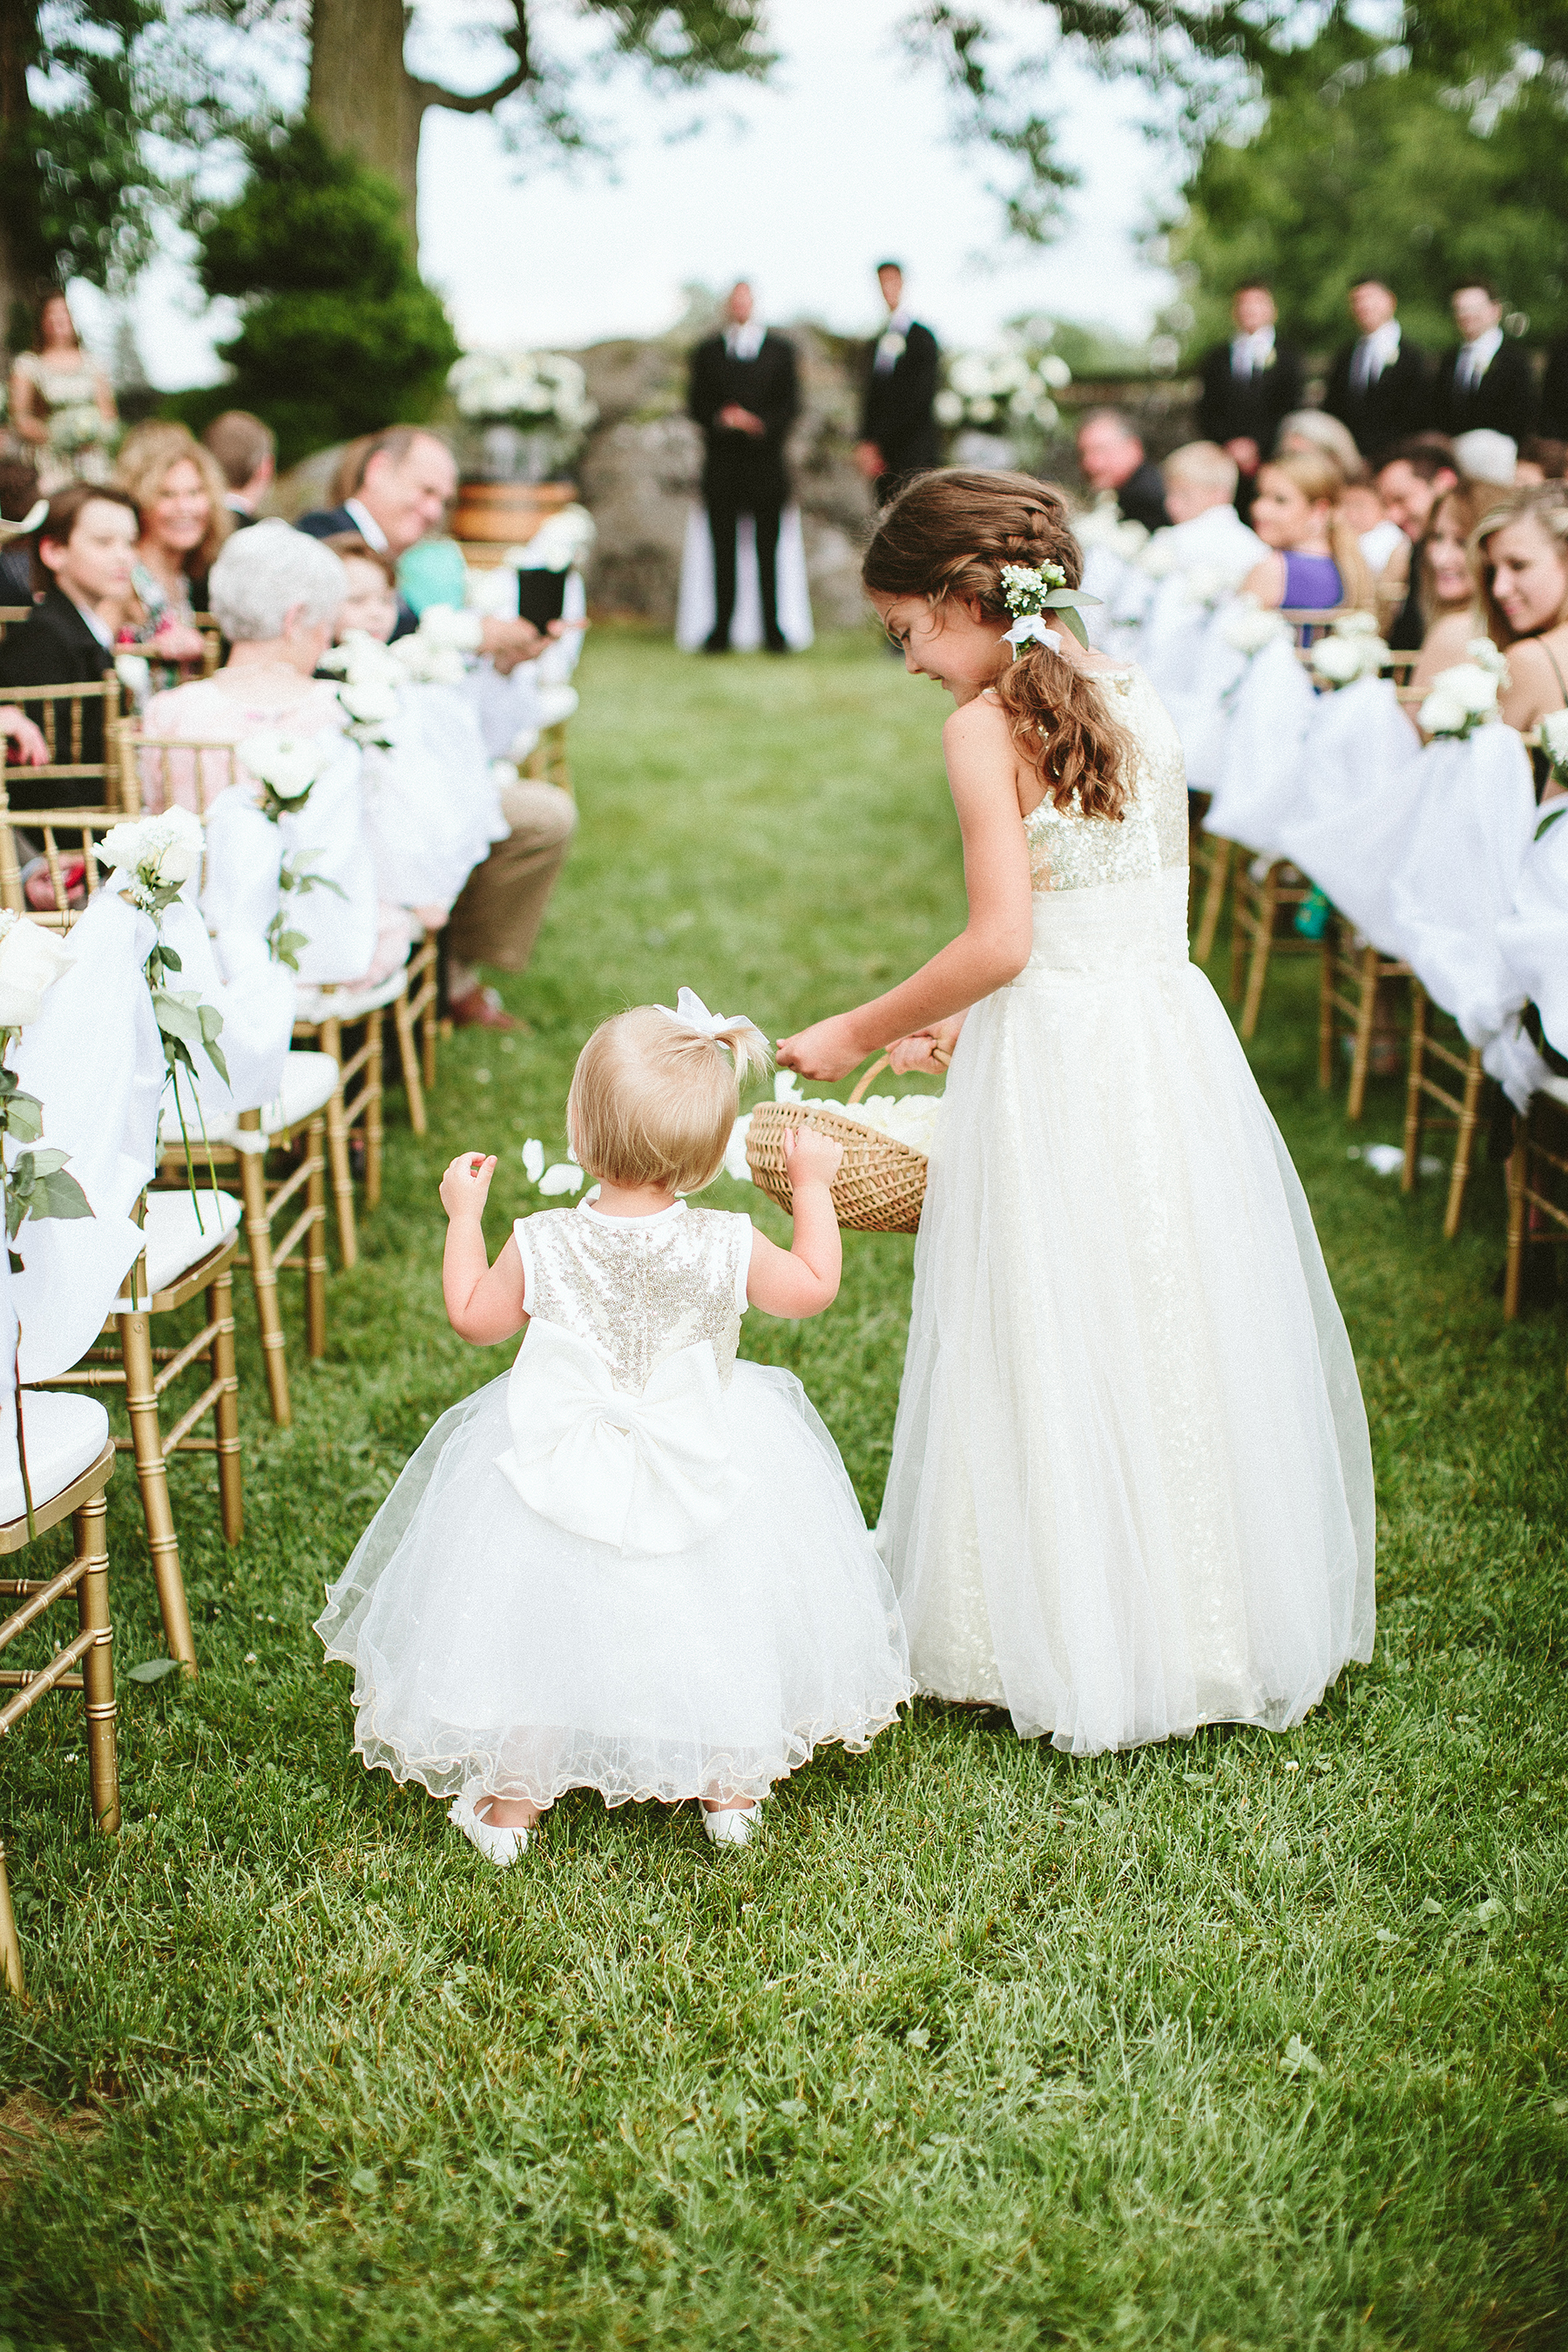 Tips for Helping Your Flower Girl and Ring Bearer Feel Comfortable During the Ceremony